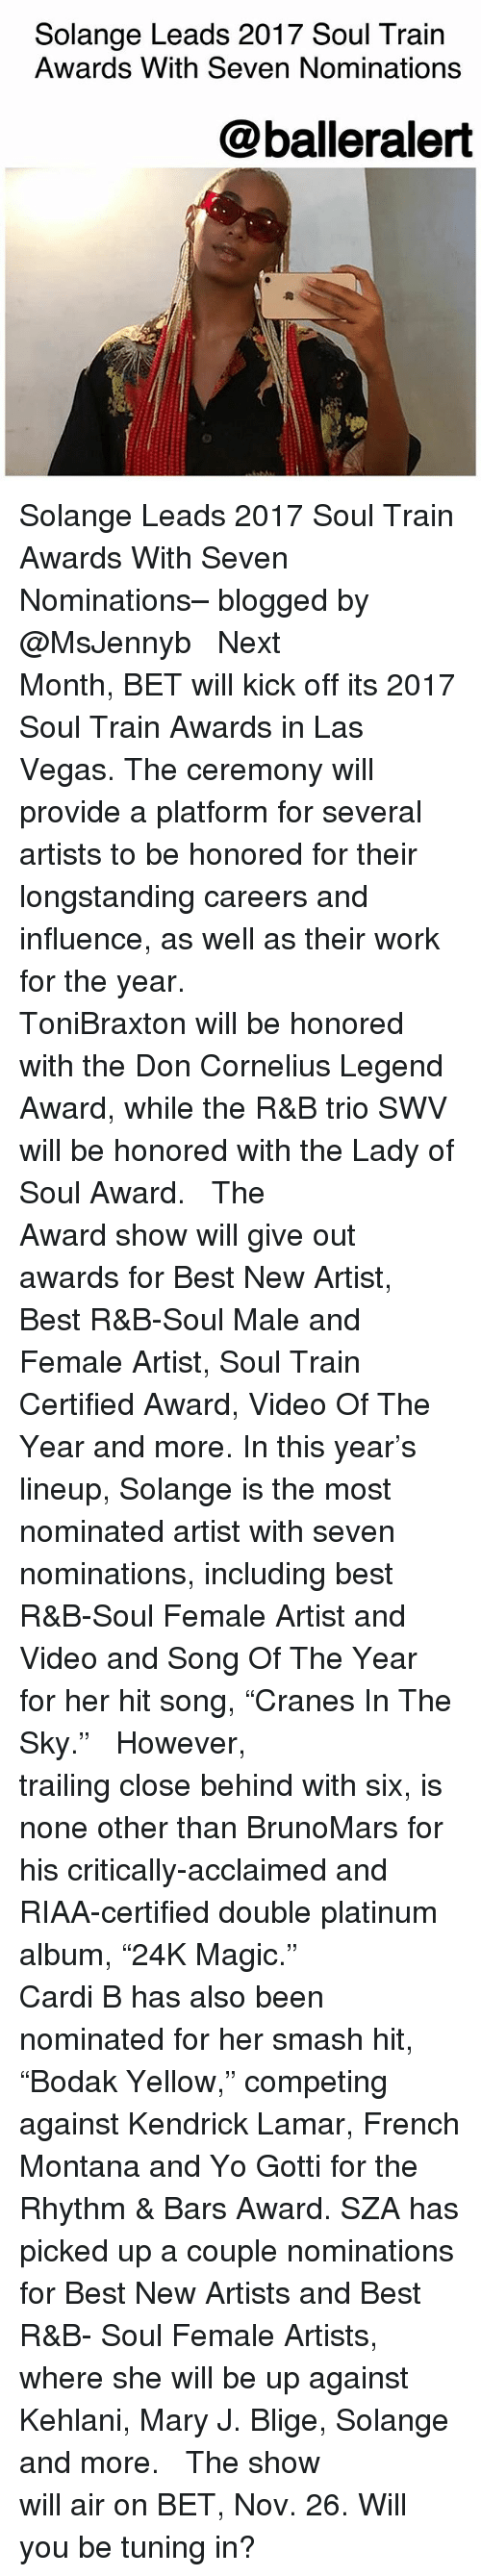 """song of the year: Solange Leads 2017 Soul Train  Awards With Seven Nominations  @balleralert Solange Leads 2017 Soul Train Awards With Seven Nominations– blogged by @MsJennyb ⠀⠀⠀⠀⠀⠀⠀ ⠀⠀⠀⠀⠀⠀⠀ Next Month, BET will kick off its 2017 Soul Train Awards in Las Vegas. The ceremony will provide a platform for several artists to be honored for their longstanding careers and influence, as well as their work for the year. ⠀⠀⠀⠀⠀⠀⠀ ⠀⠀⠀⠀⠀⠀⠀ ToniBraxton will be honored with the Don Cornelius Legend Award, while the R&B trio SWV will be honored with the Lady of Soul Award. ⠀⠀⠀⠀⠀⠀⠀ ⠀⠀⠀⠀⠀⠀⠀ The Award show will give out awards for Best New Artist, Best R&B-Soul Male and Female Artist, Soul Train Certified Award, Video Of The Year and more. In this year's lineup, Solange is the most nominated artist with seven nominations, including best R&B-Soul Female Artist and Video and Song Of The Year for her hit song, """"Cranes In The Sky."""" ⠀⠀⠀⠀⠀⠀⠀ ⠀⠀⠀⠀⠀⠀⠀ However, trailing close behind with six, is none other than BrunoMars for his critically-acclaimed and RIAA-certified double platinum album, """"24K Magic."""" ⠀⠀⠀⠀⠀⠀⠀ ⠀⠀⠀⠀⠀⠀⠀ Cardi B has also been nominated for her smash hit, """"Bodak Yellow,"""" competing against Kendrick Lamar, French Montana and Yo Gotti for the Rhythm & Bars Award. SZA has picked up a couple nominations for Best New Artists and Best R&B- Soul Female Artists, where she will be up against Kehlani, Mary J. Blige, Solange and more. ⠀⠀⠀⠀⠀⠀⠀ ⠀⠀⠀⠀⠀⠀⠀ The show will air on BET, Nov. 26. Will you be tuning in?"""